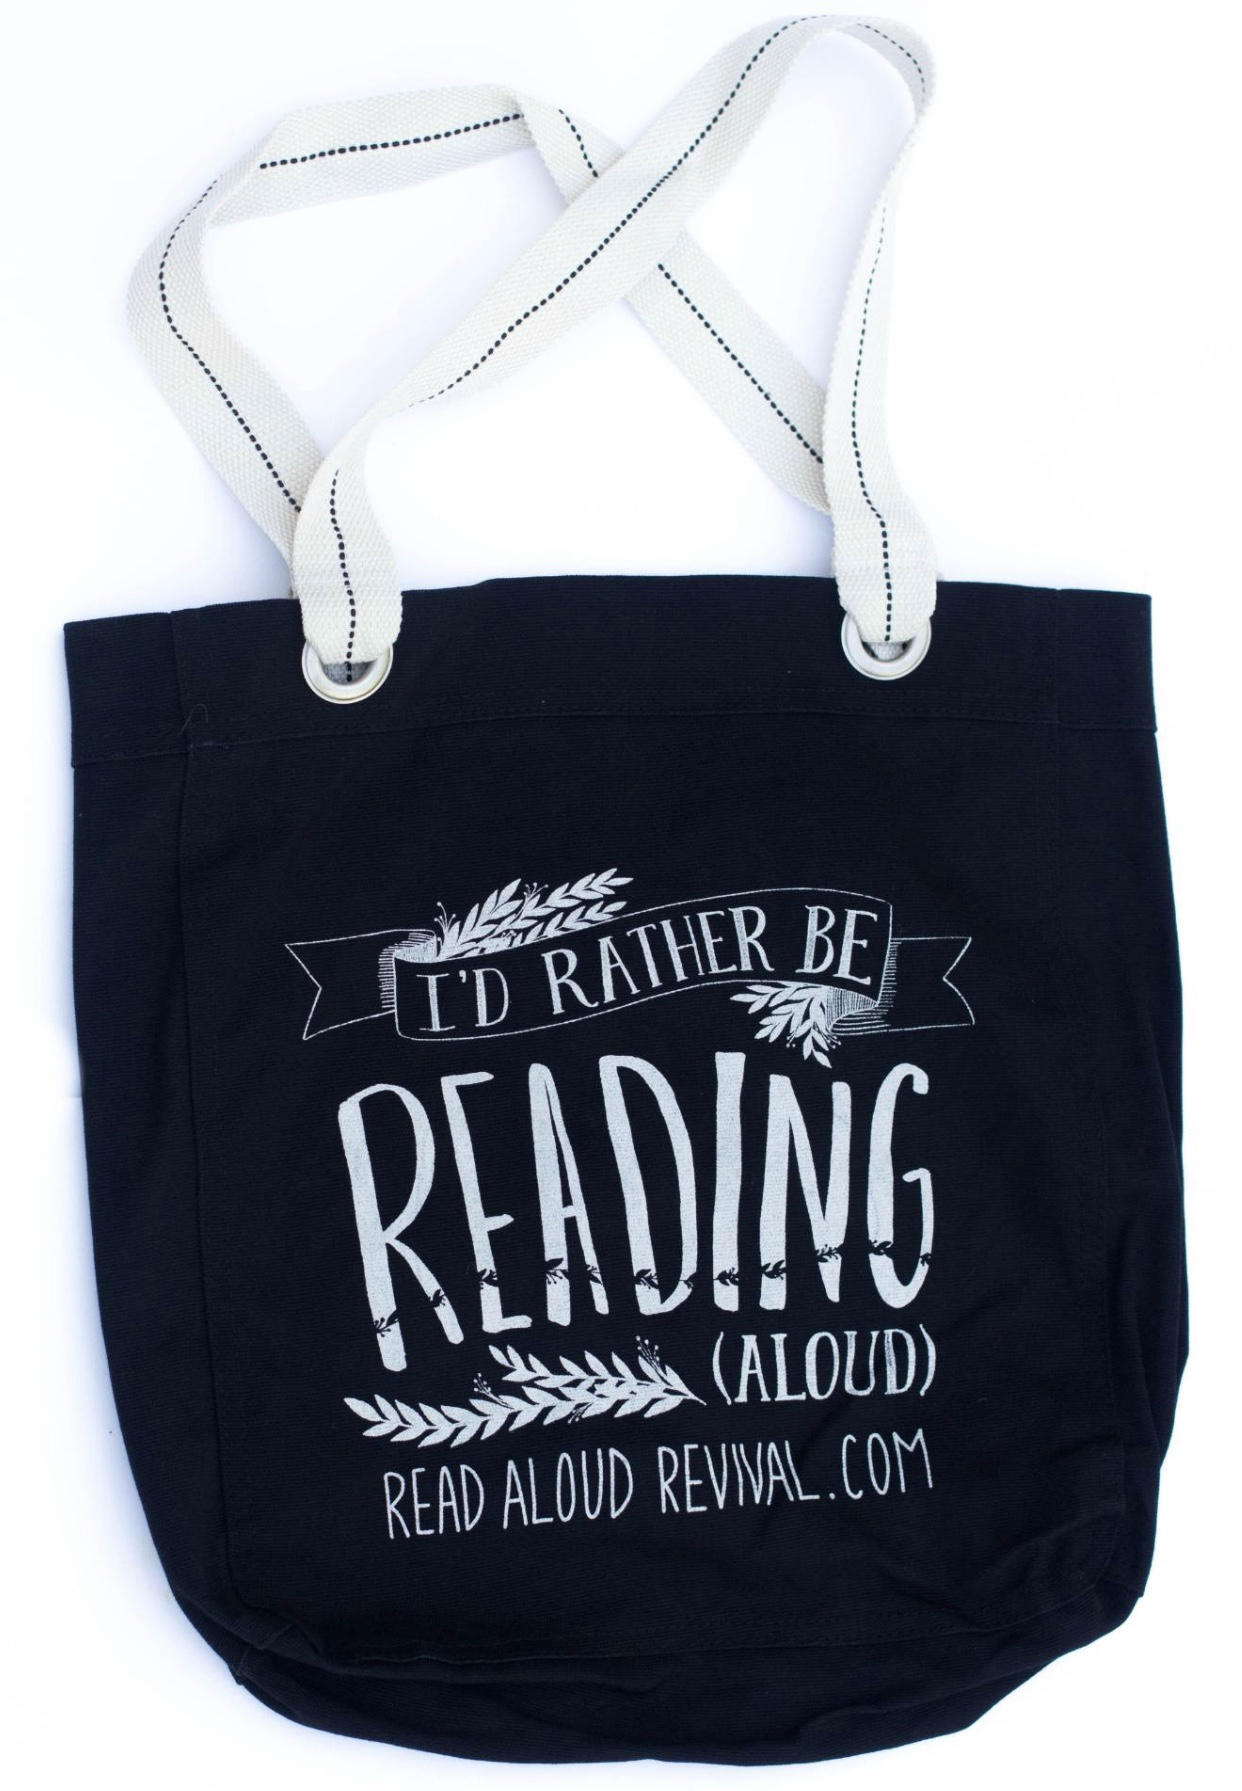 Book Bag from The Read Aloud Revival, Black with Charcoal Lining